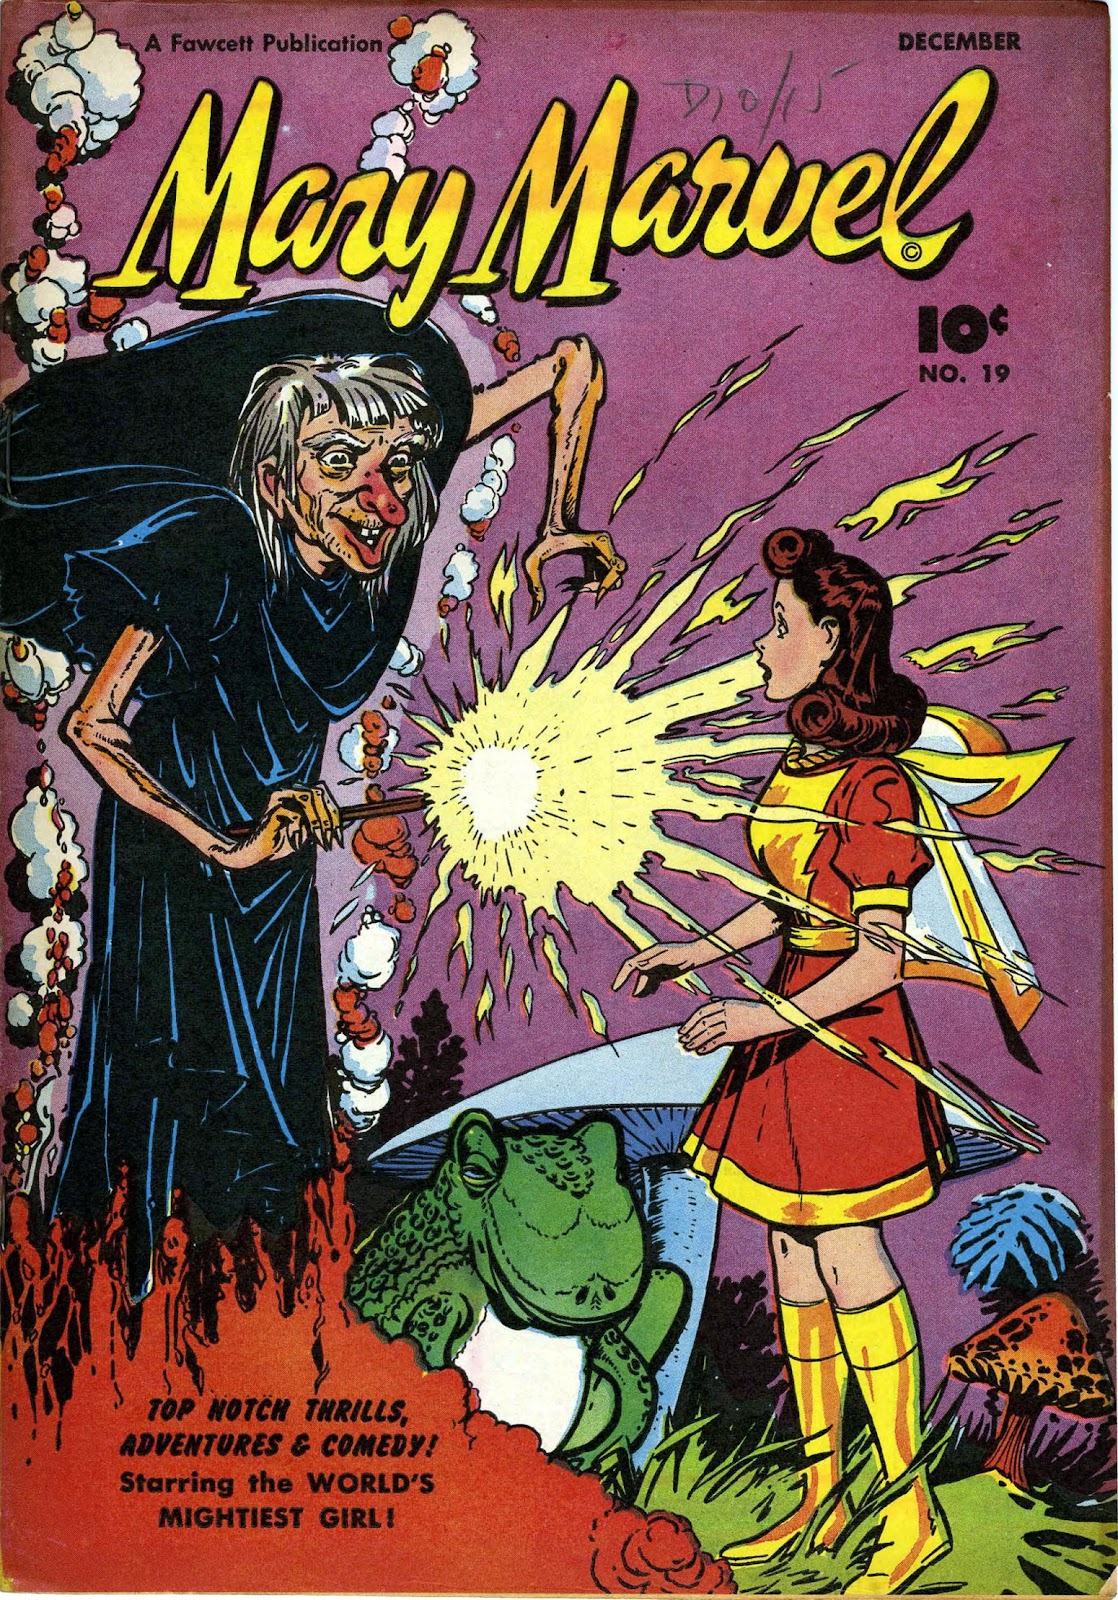 Read online Mary Marvel comic -  Issue #19 - 1